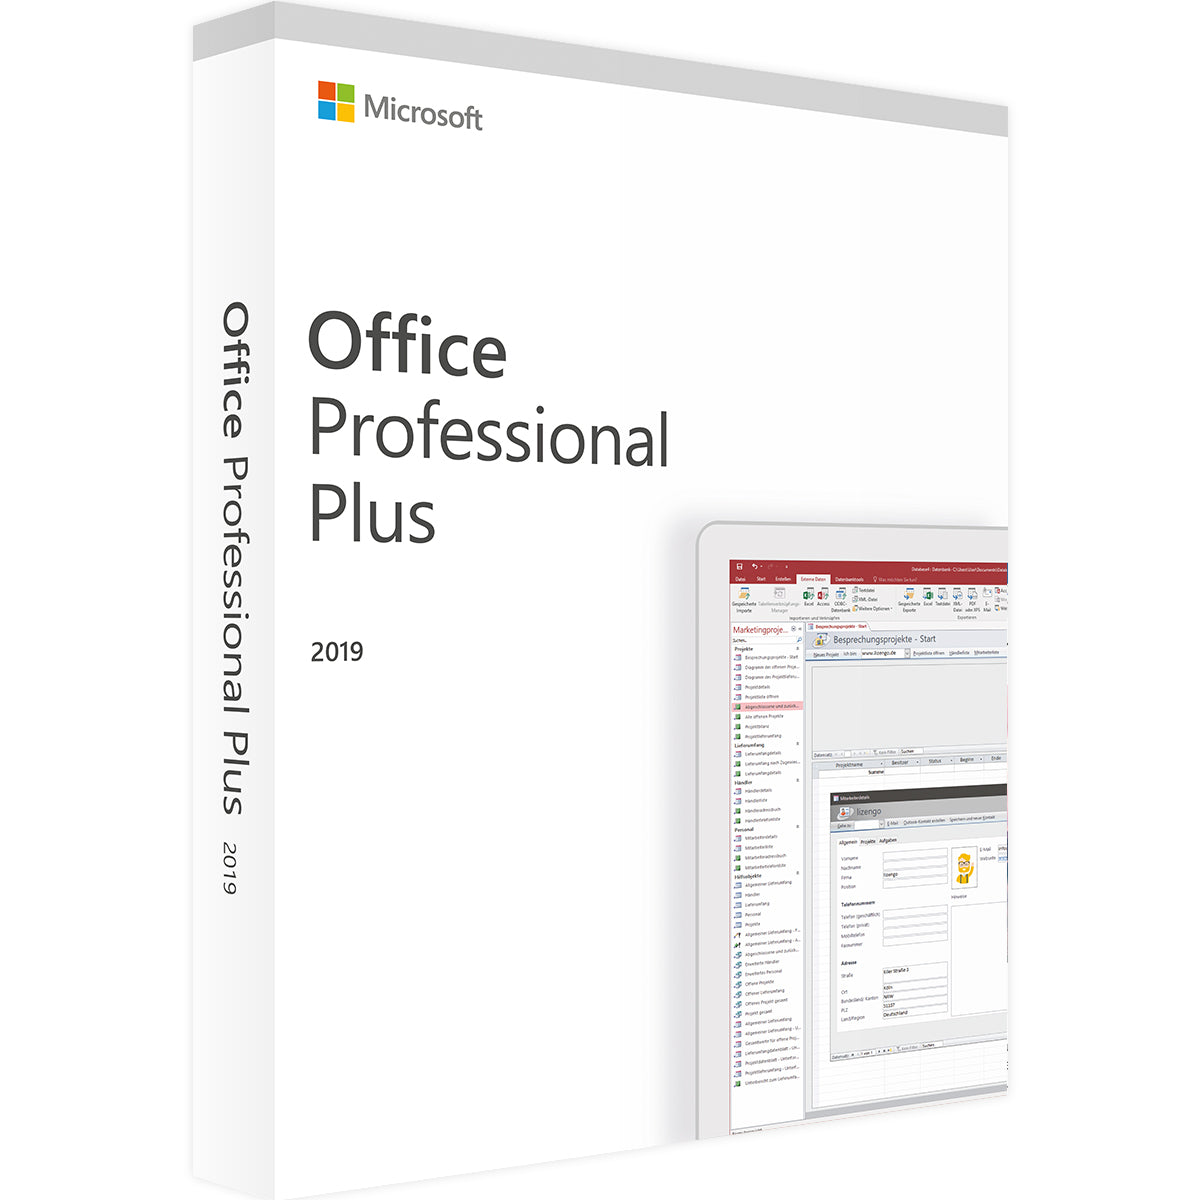 Microsoft Office Professional Plus 2019 - Software-Markt data-zoom=